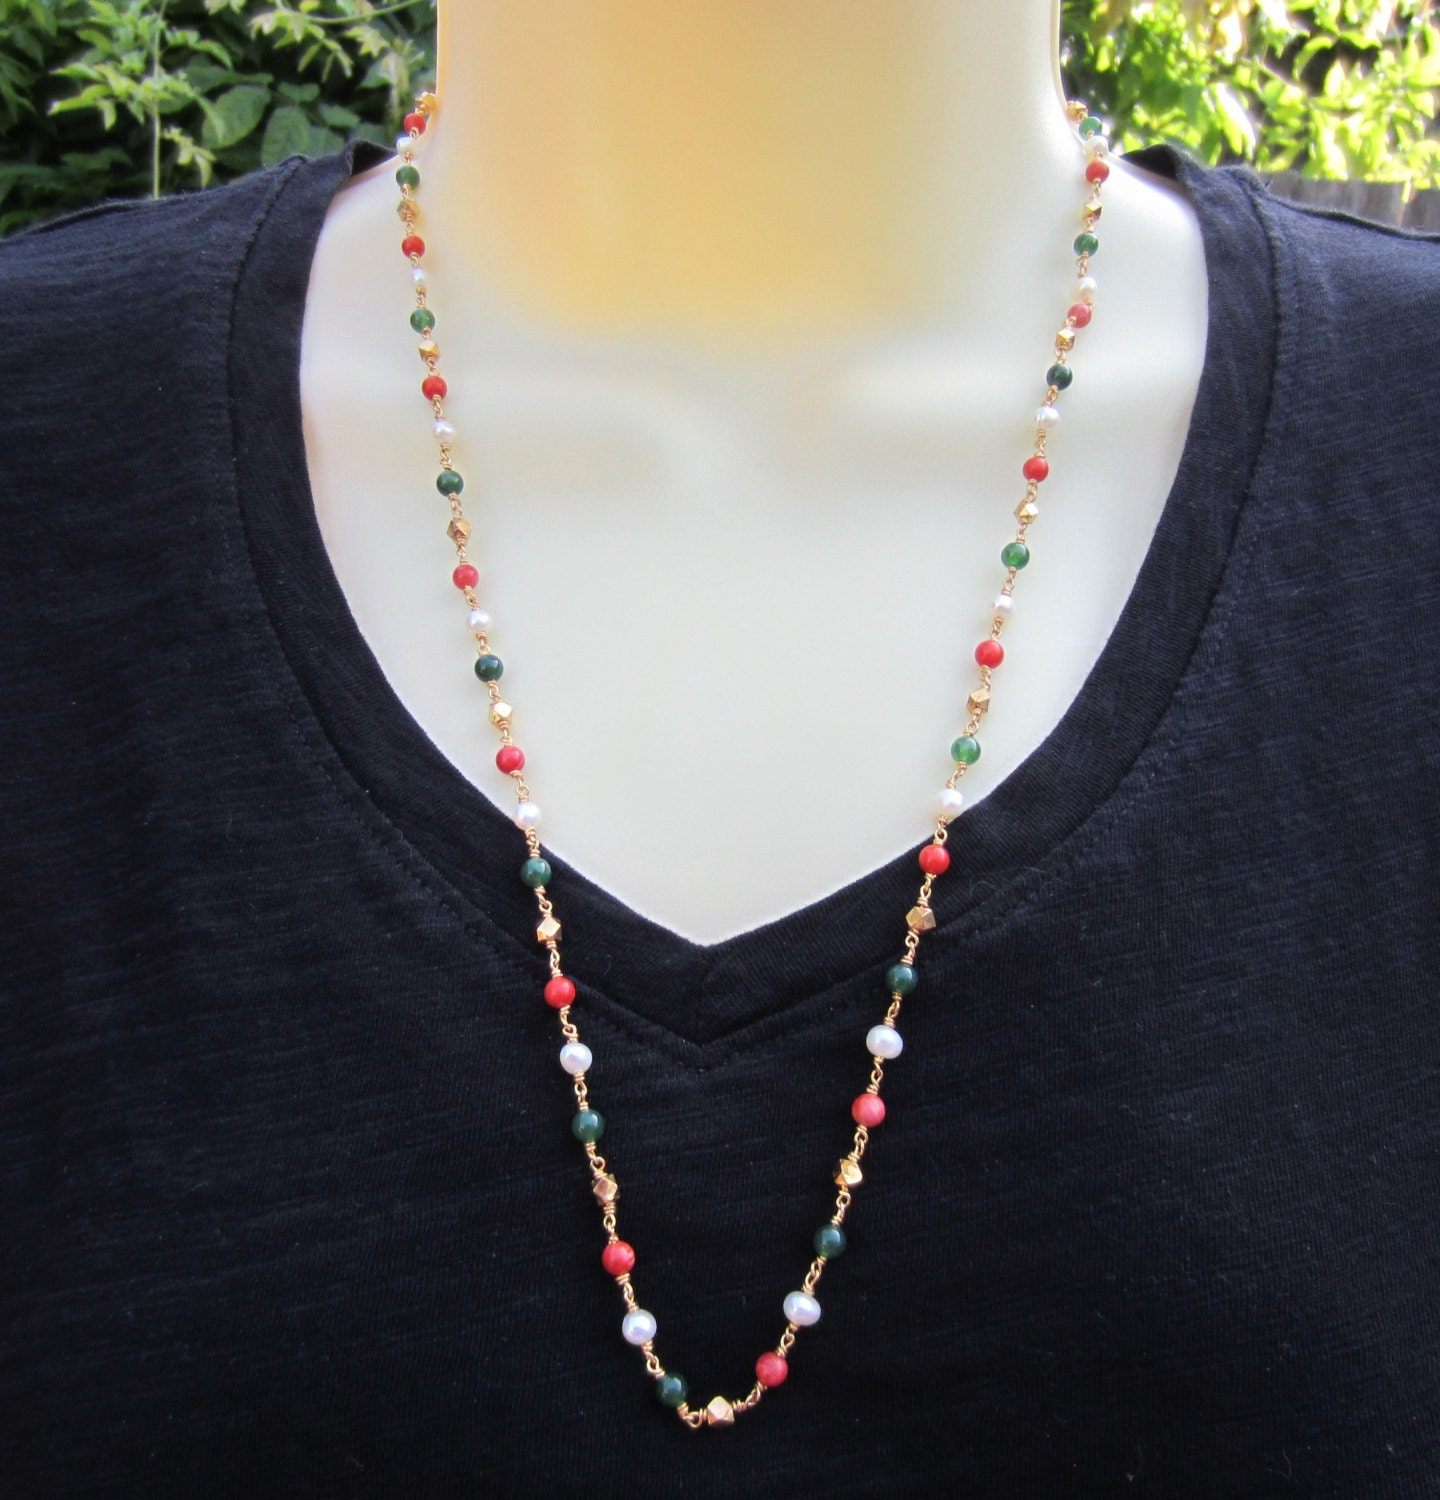 Pearls Red Corals and Jade Necklace One gram Gold Jewelry